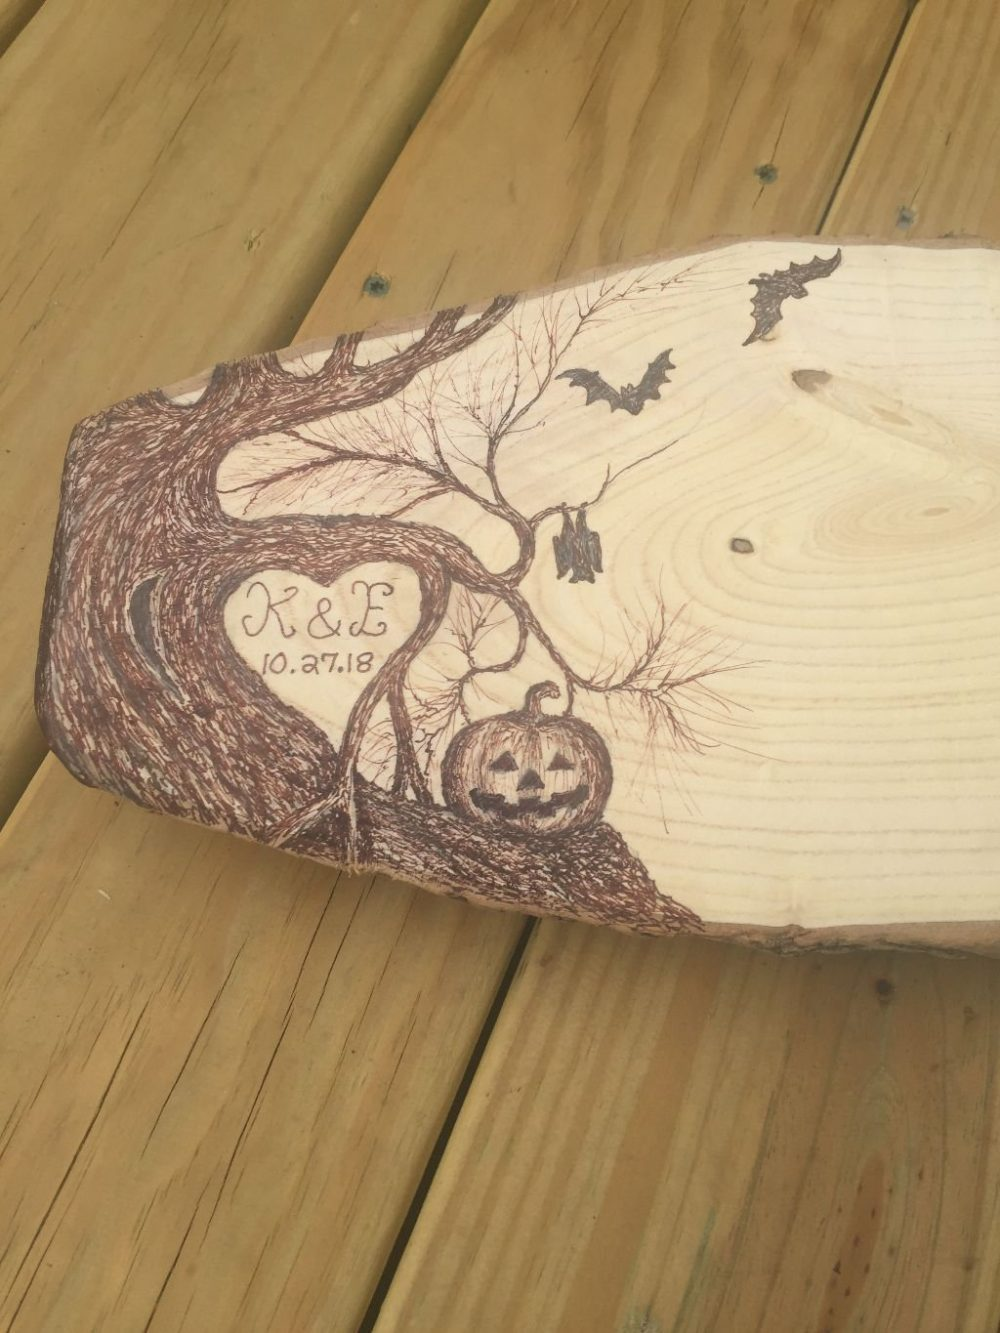 Extra Large Halloween Wedding Guest Book - Rustic Wood Slice Personalized Unique Anniversary Reunion